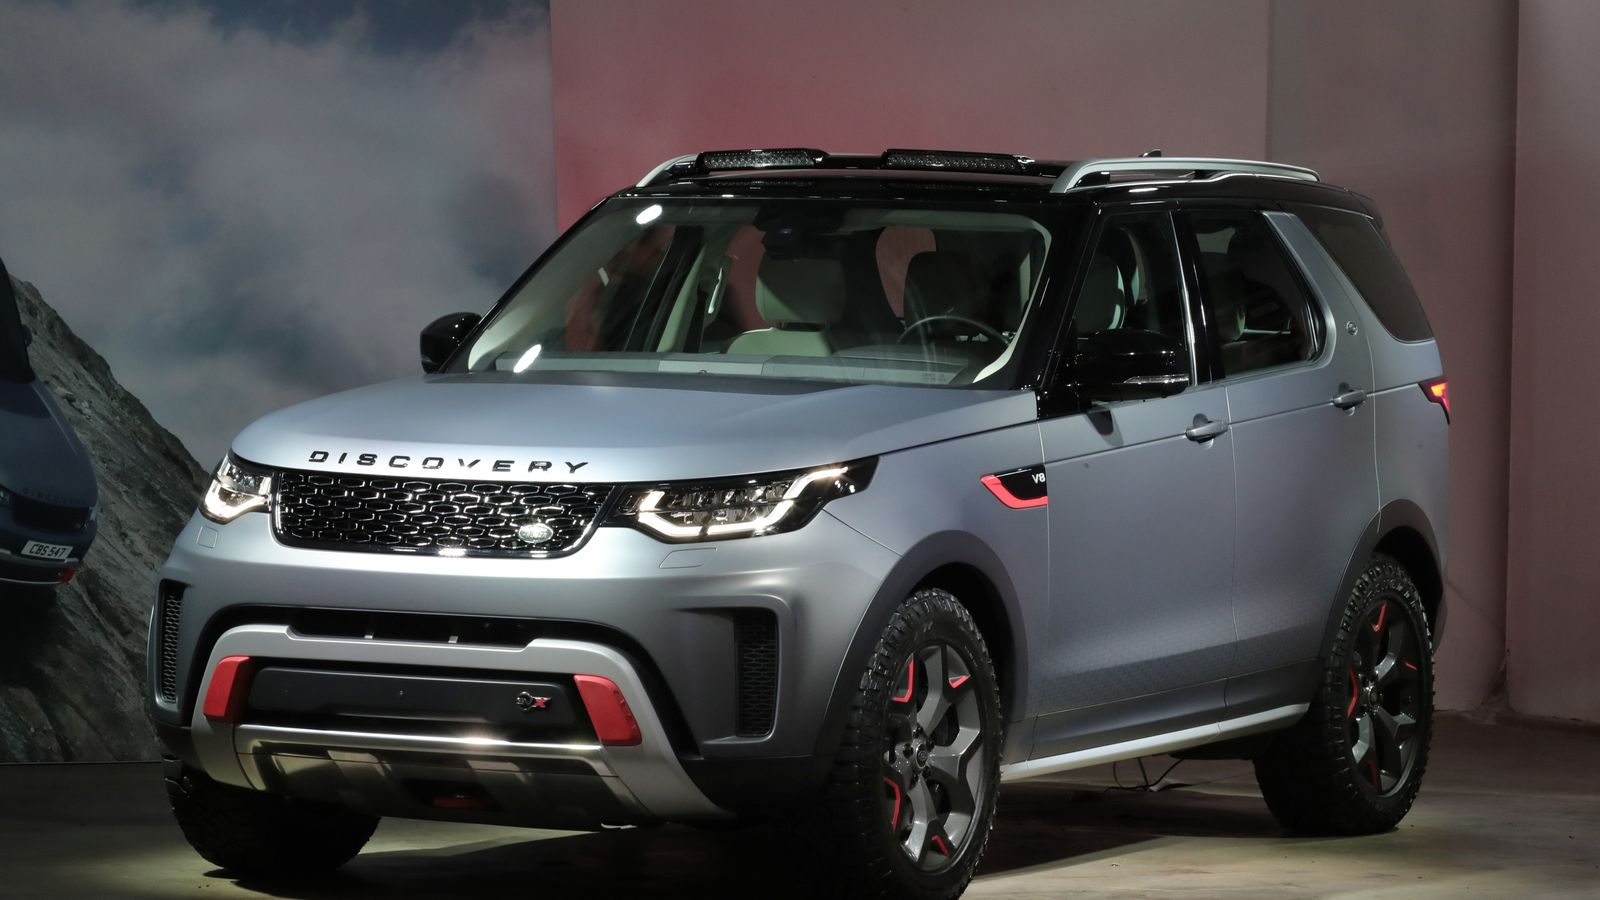 jaguar land rover moves discovery production to slovakia. Black Bedroom Furniture Sets. Home Design Ideas